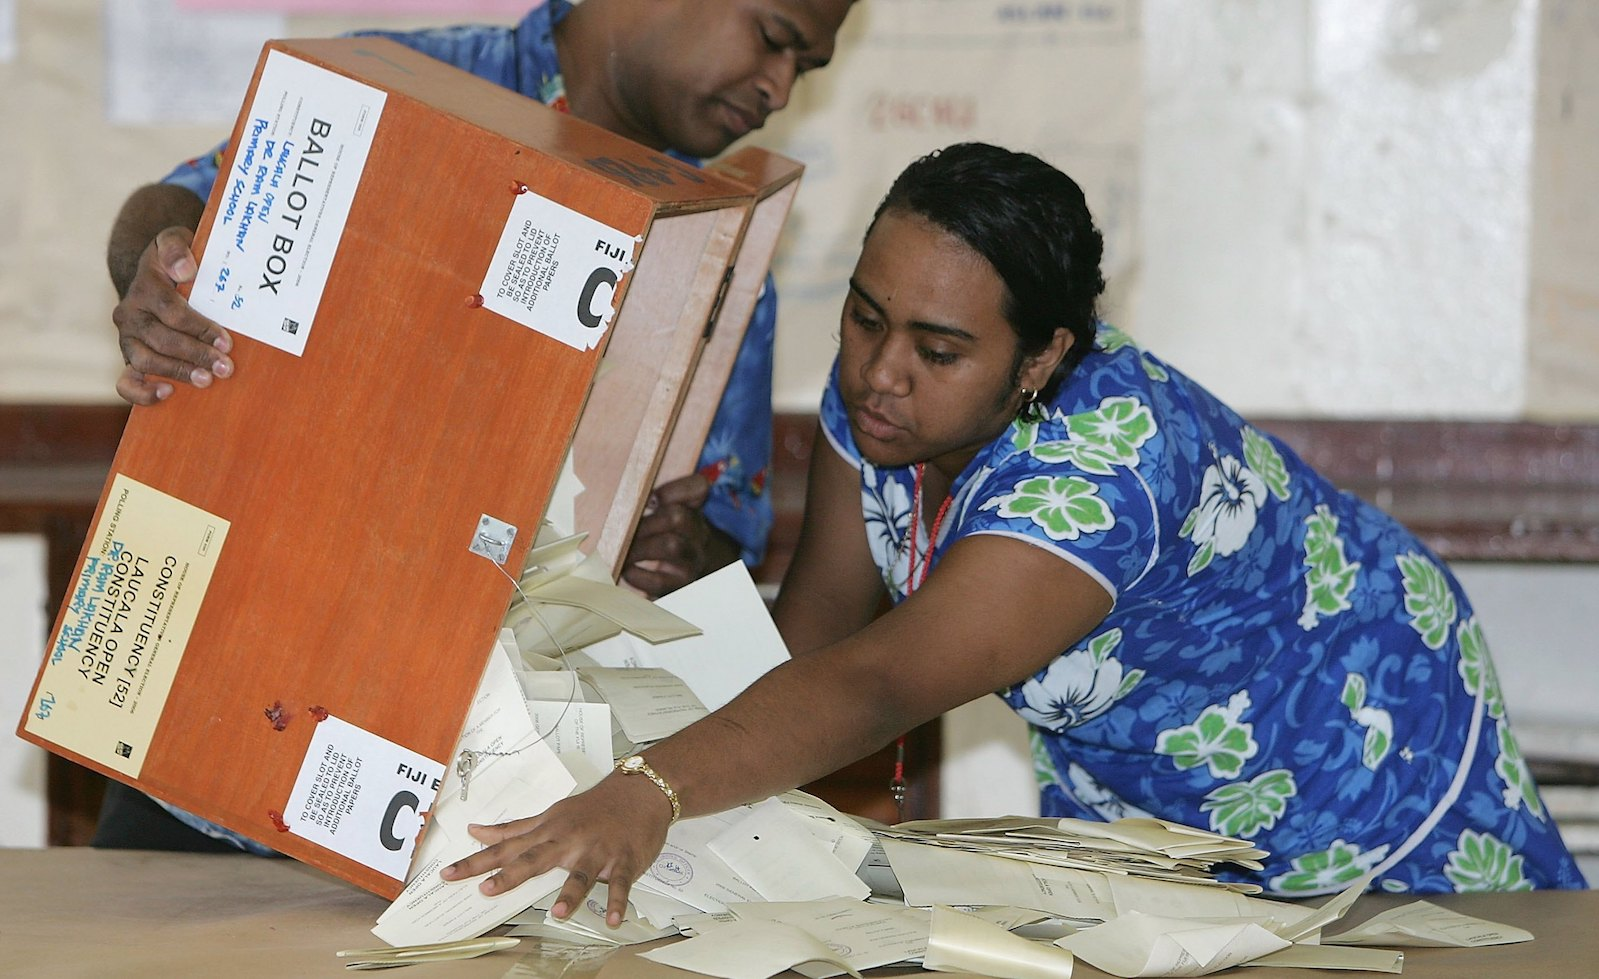 Workers empty a ballot box in Suva, Fiji in 2006 (Photo: Sandra Mu via Getty)